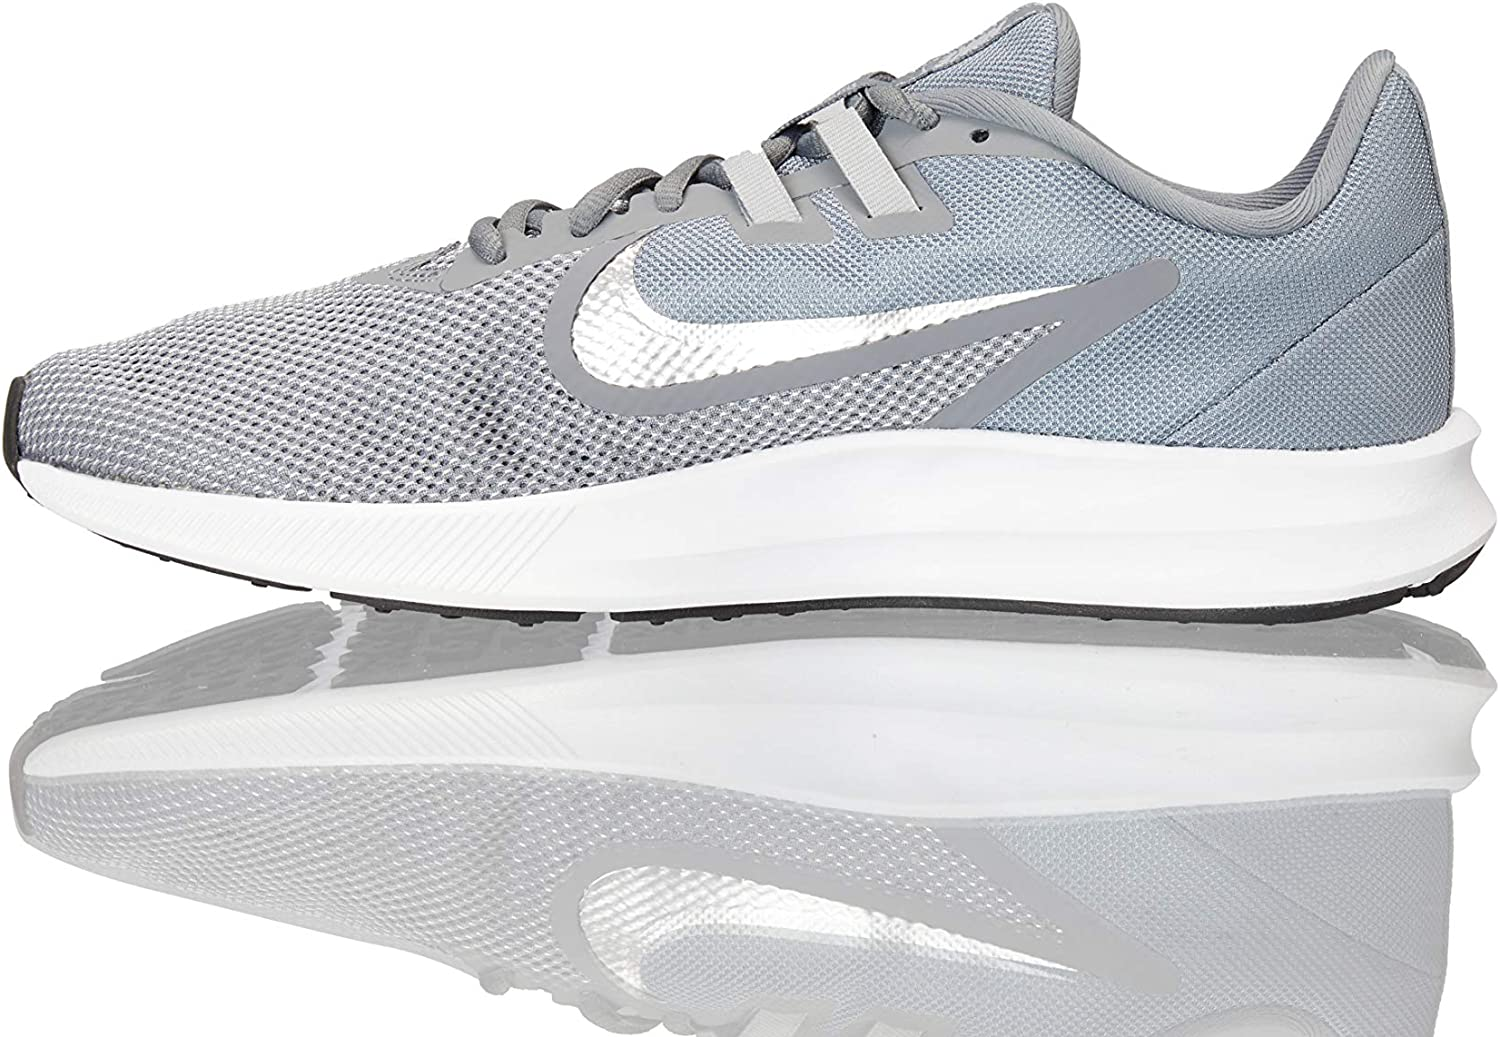 Nike Men s Downshifter 9 Running Shoe, cool grey metallic silver – wolf grey, 11 Regular US